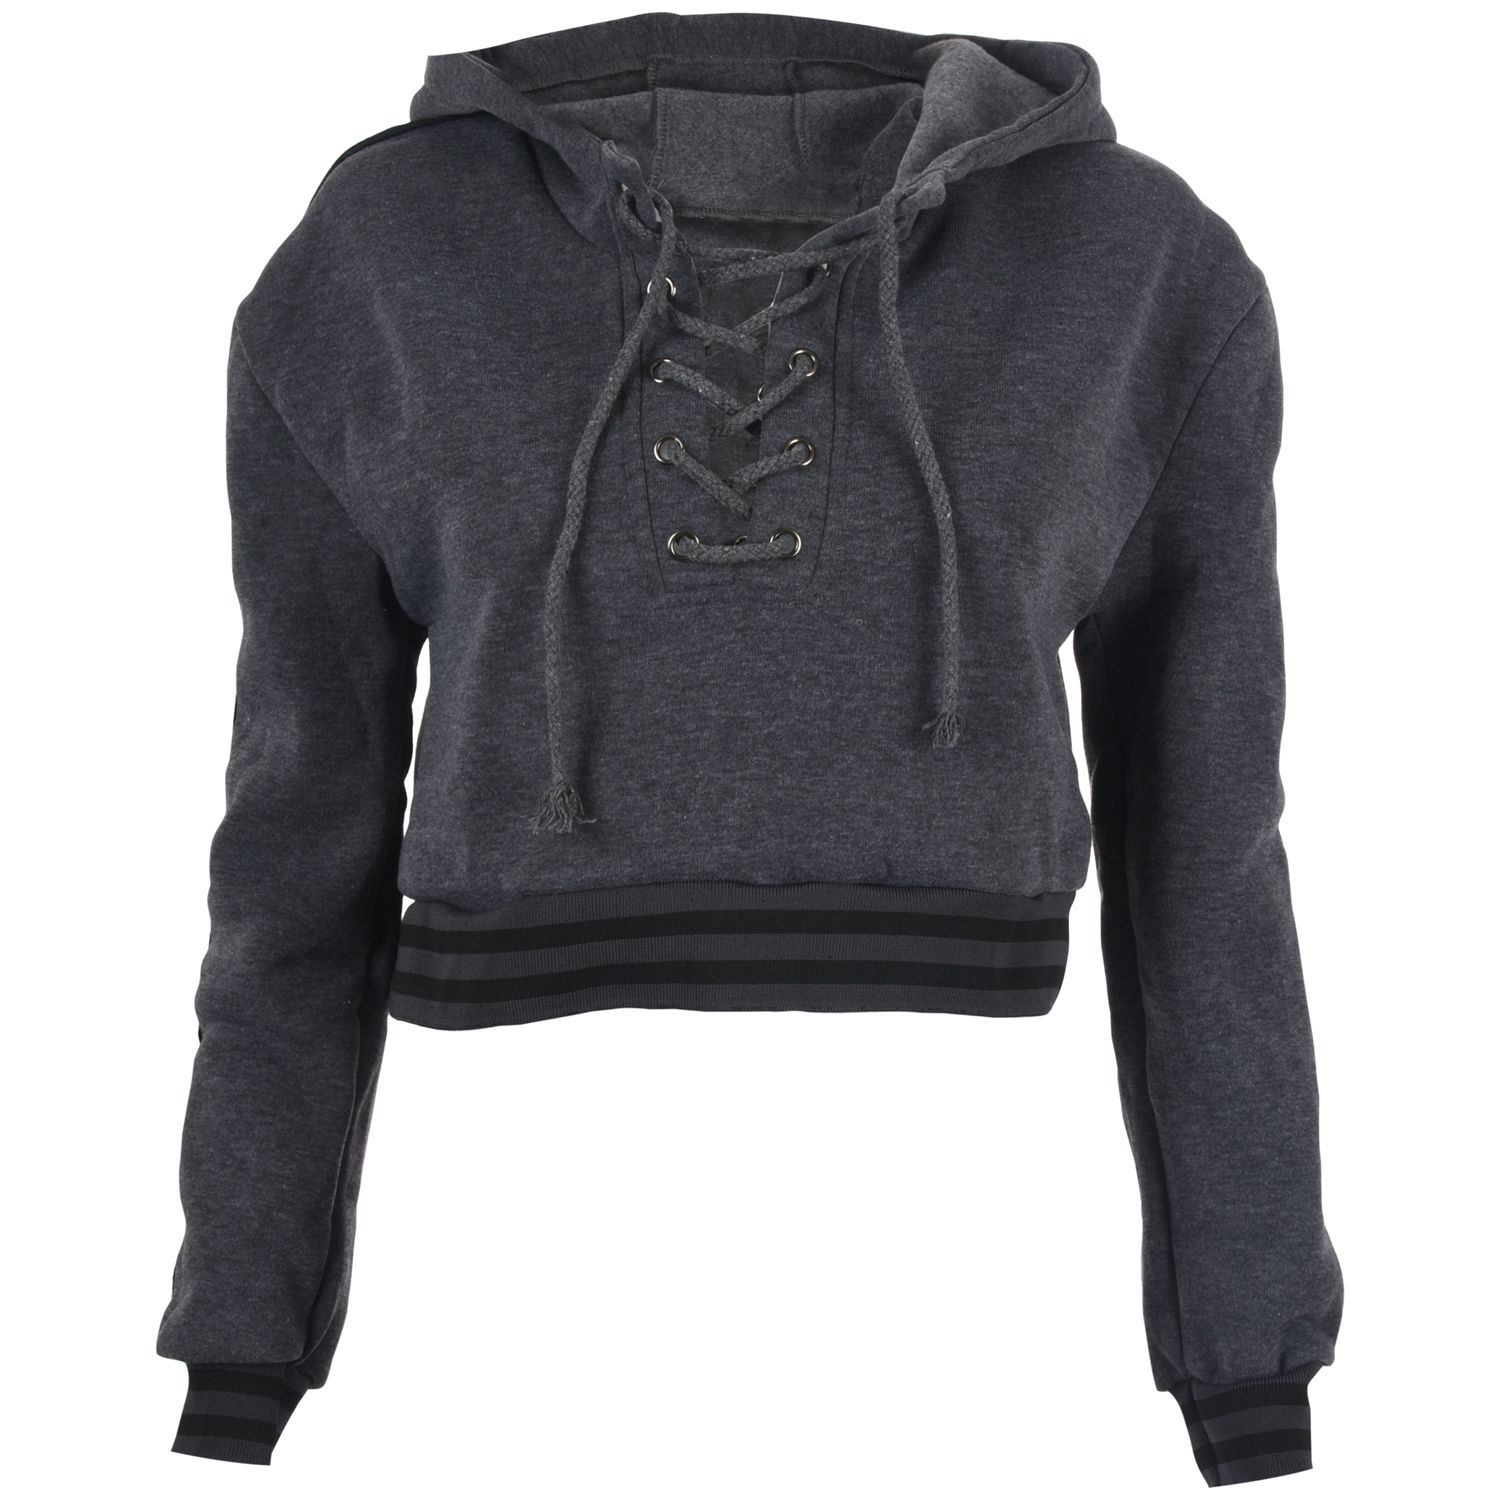 Women's New Fashion Hoodies Sweatshirt Long Sleeve Lace-Up V-Neck Pullover Sweatshirt Bandage Hoodie Short Tops